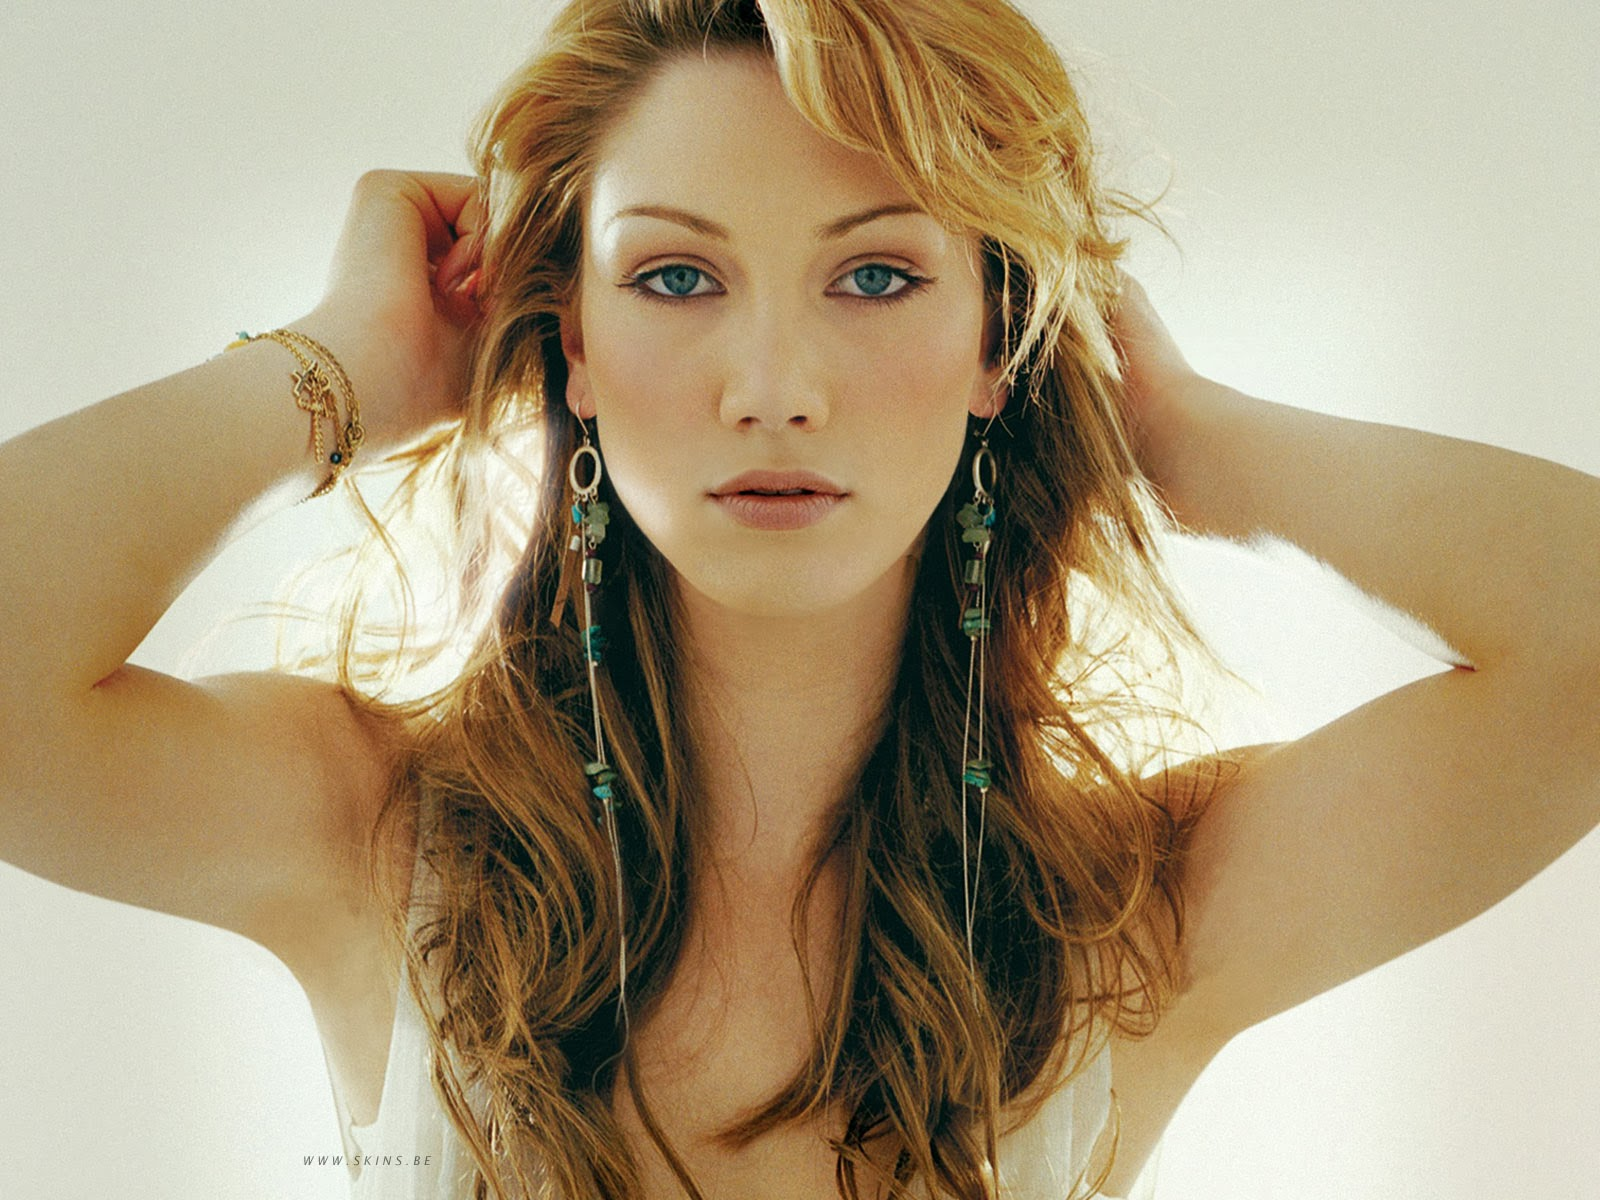 Watch further The Decline Of Pepper Potts Iron Man 3 in addition Gal Gadot Is Hotness Personified 989997 further Index likewise Michelle. on scarlett johansson young